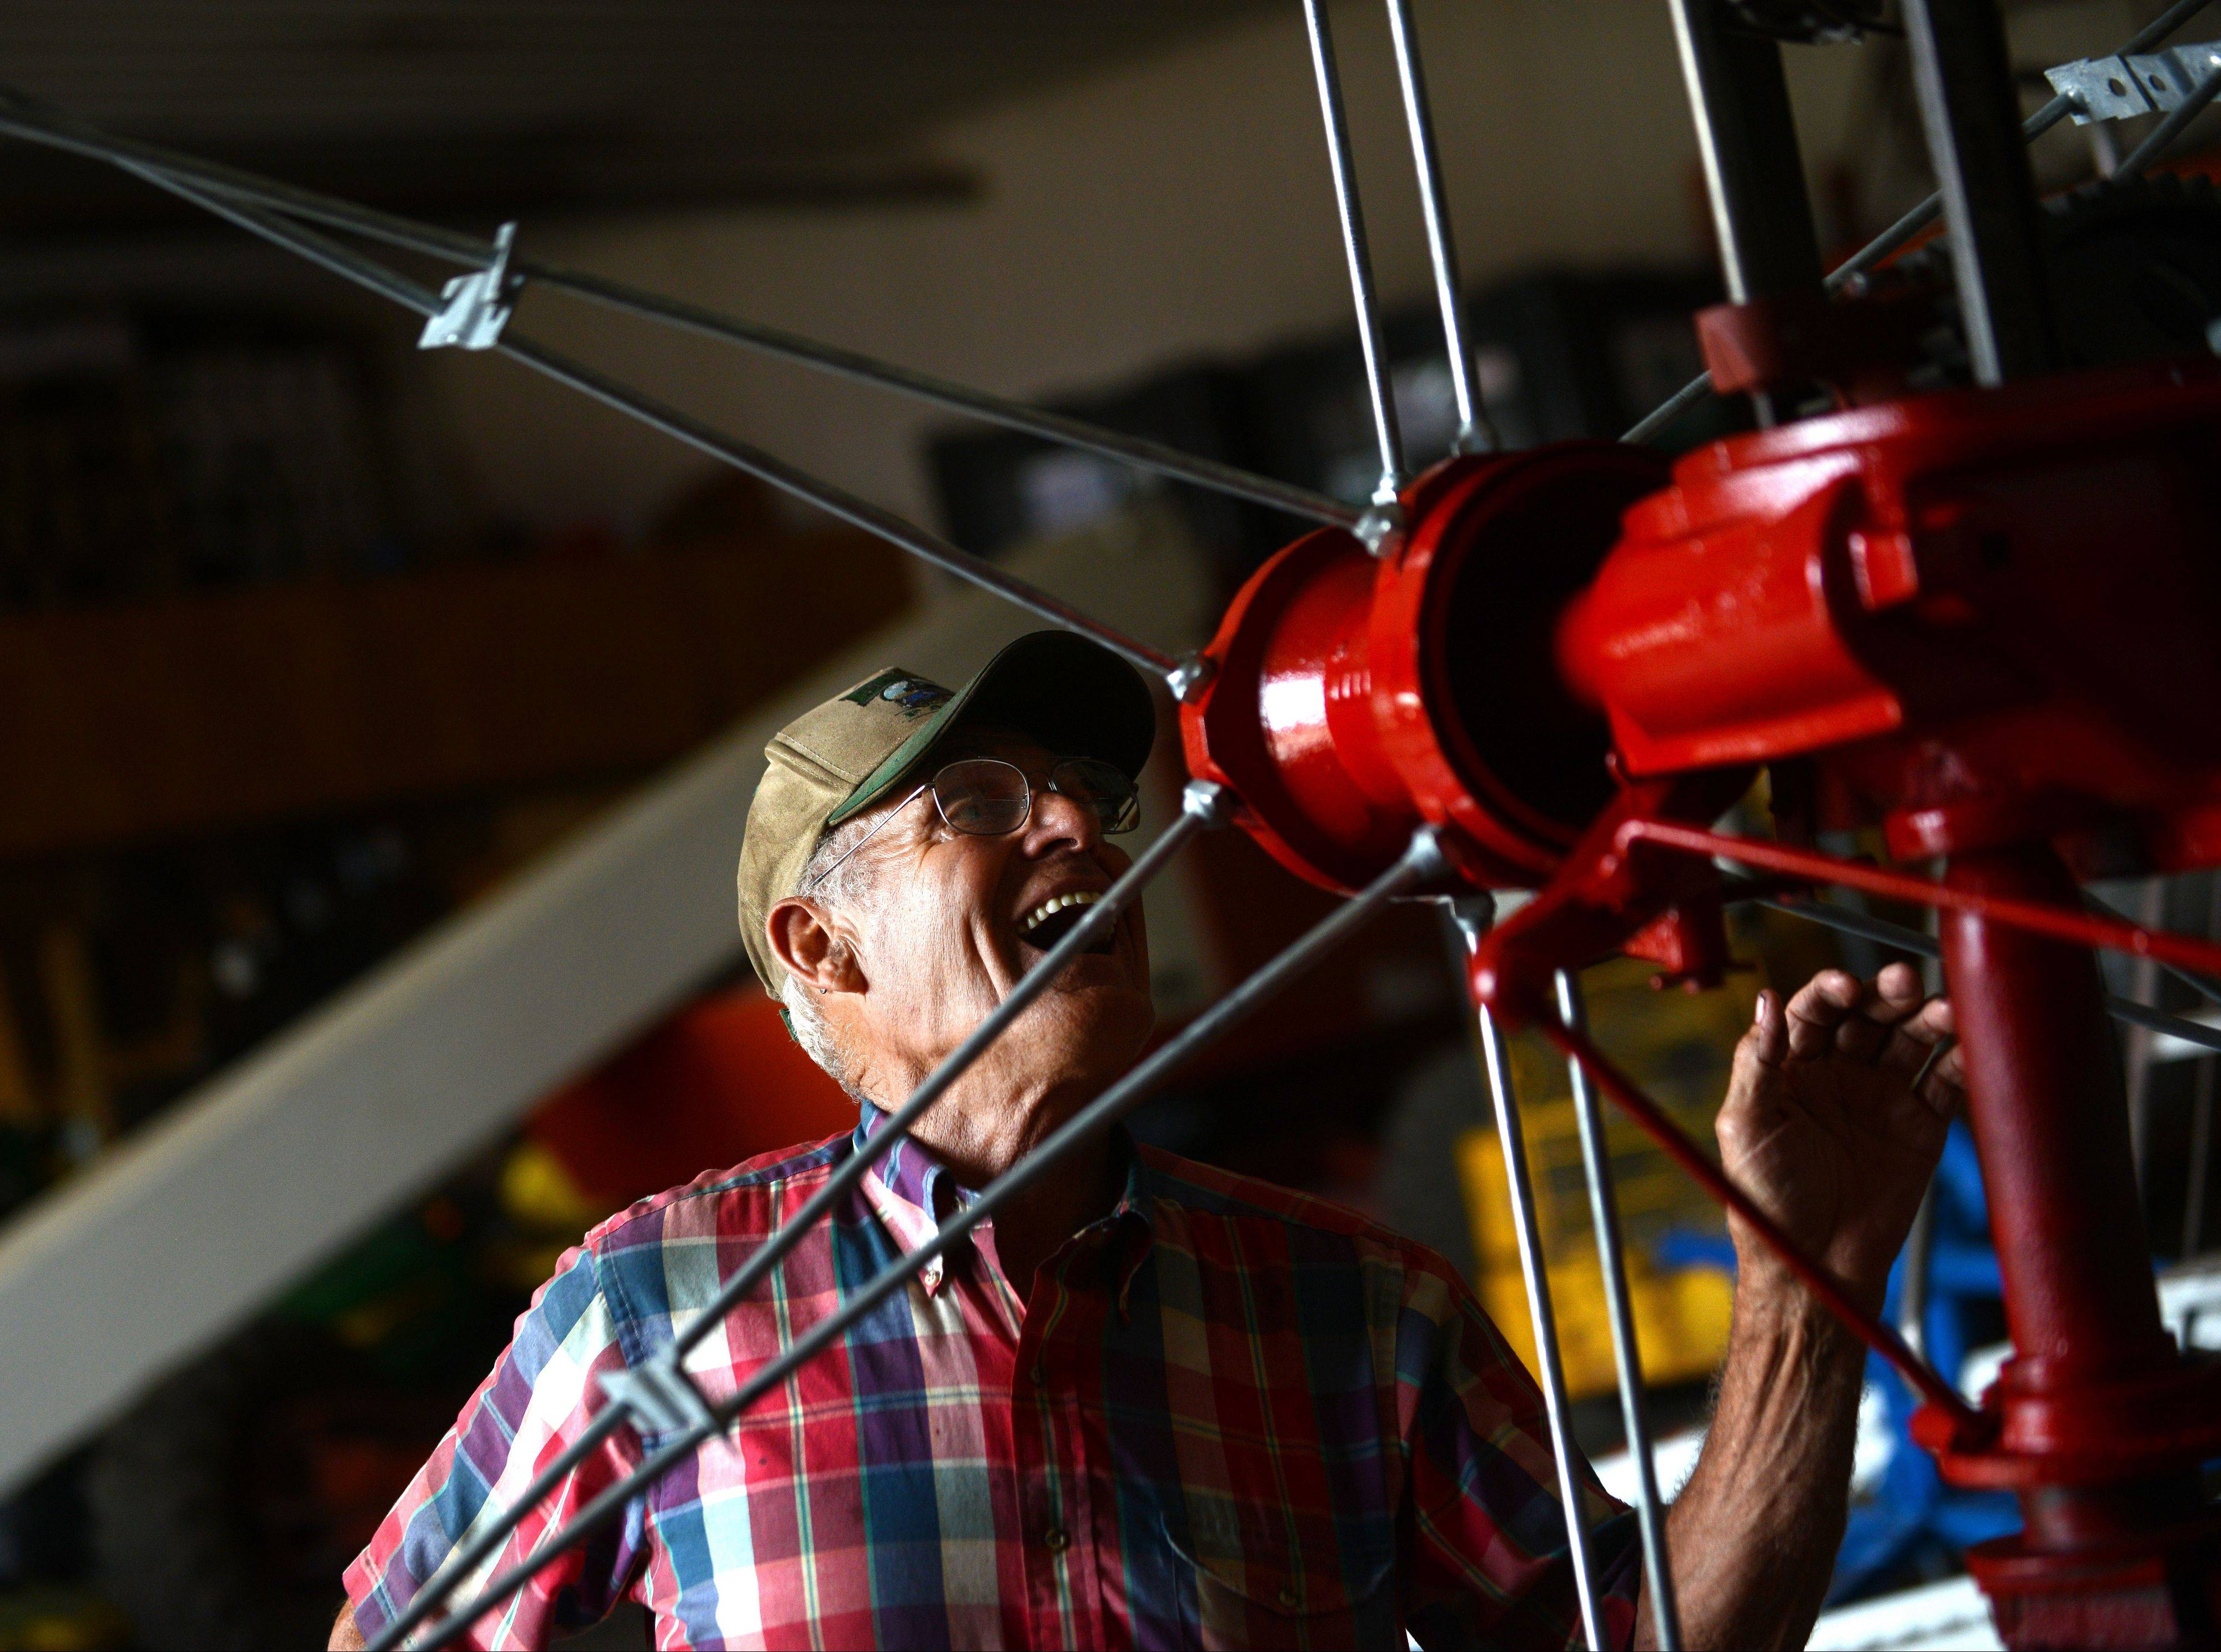 Frank Engel of Hampshire works on a windmill in his barn workshop.